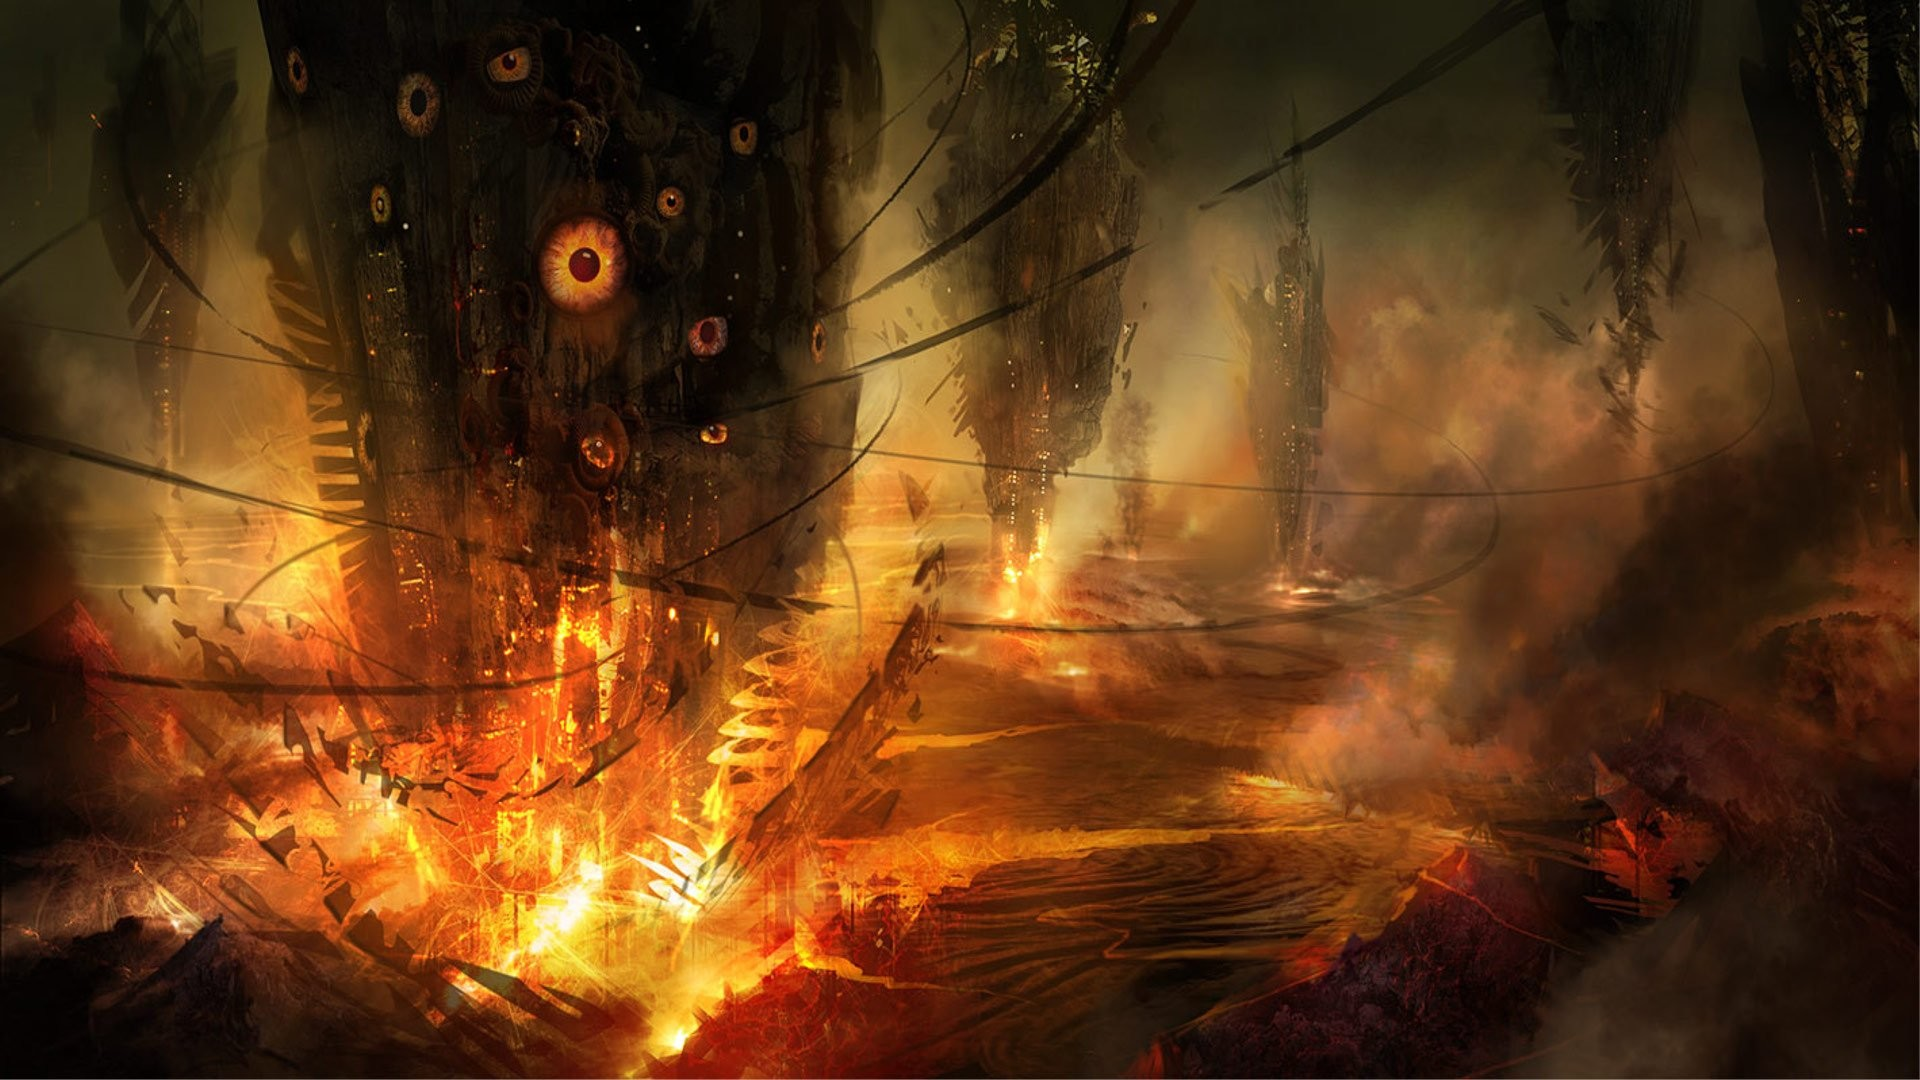 Eyes fire concept art science fiction alien landscapes cyclone Philip  Straub wallpaper | | 251901 | WallpaperUP